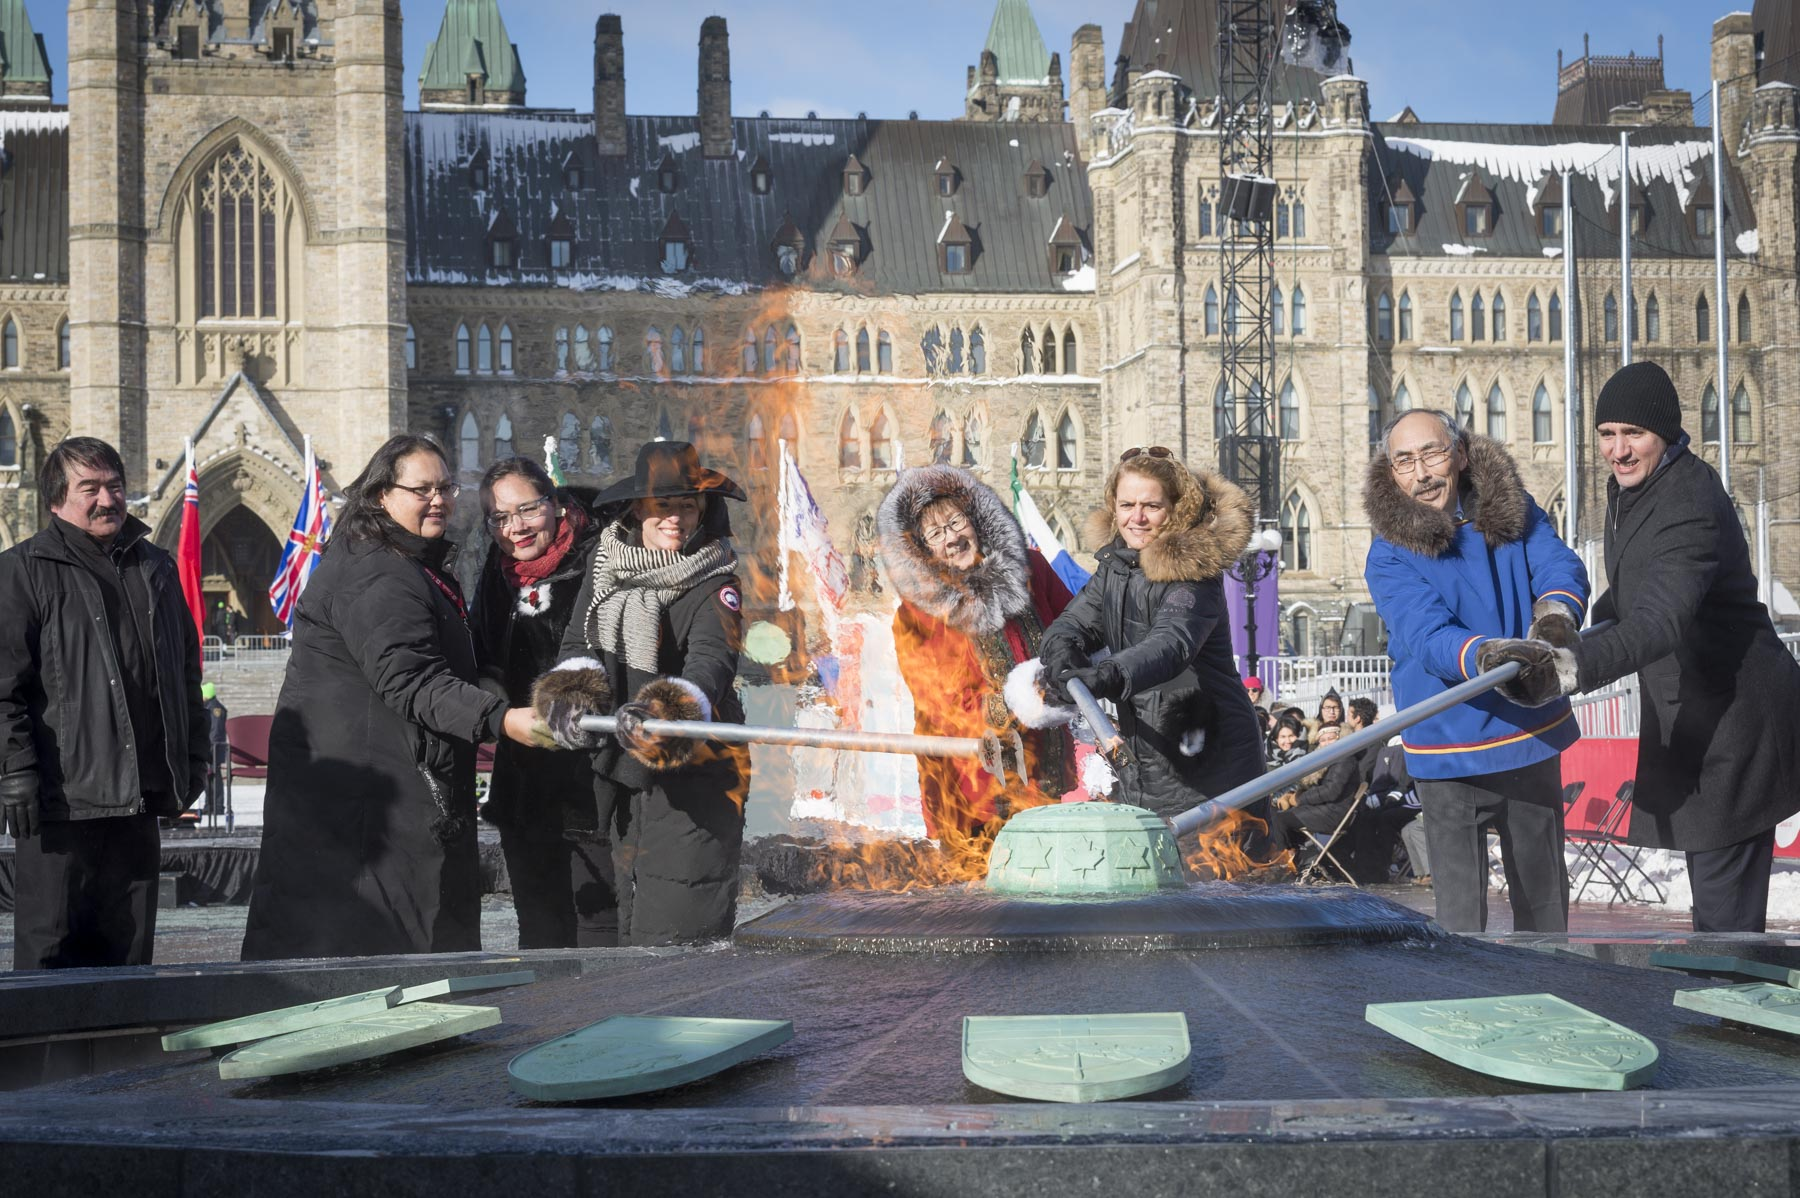 Afterwards, the Governor General participated in the lighting of the Centennial Flame. The Centennial Flame is part of a fountain that now has 13 sides with the inclusion of the official symbols of Nunavut.